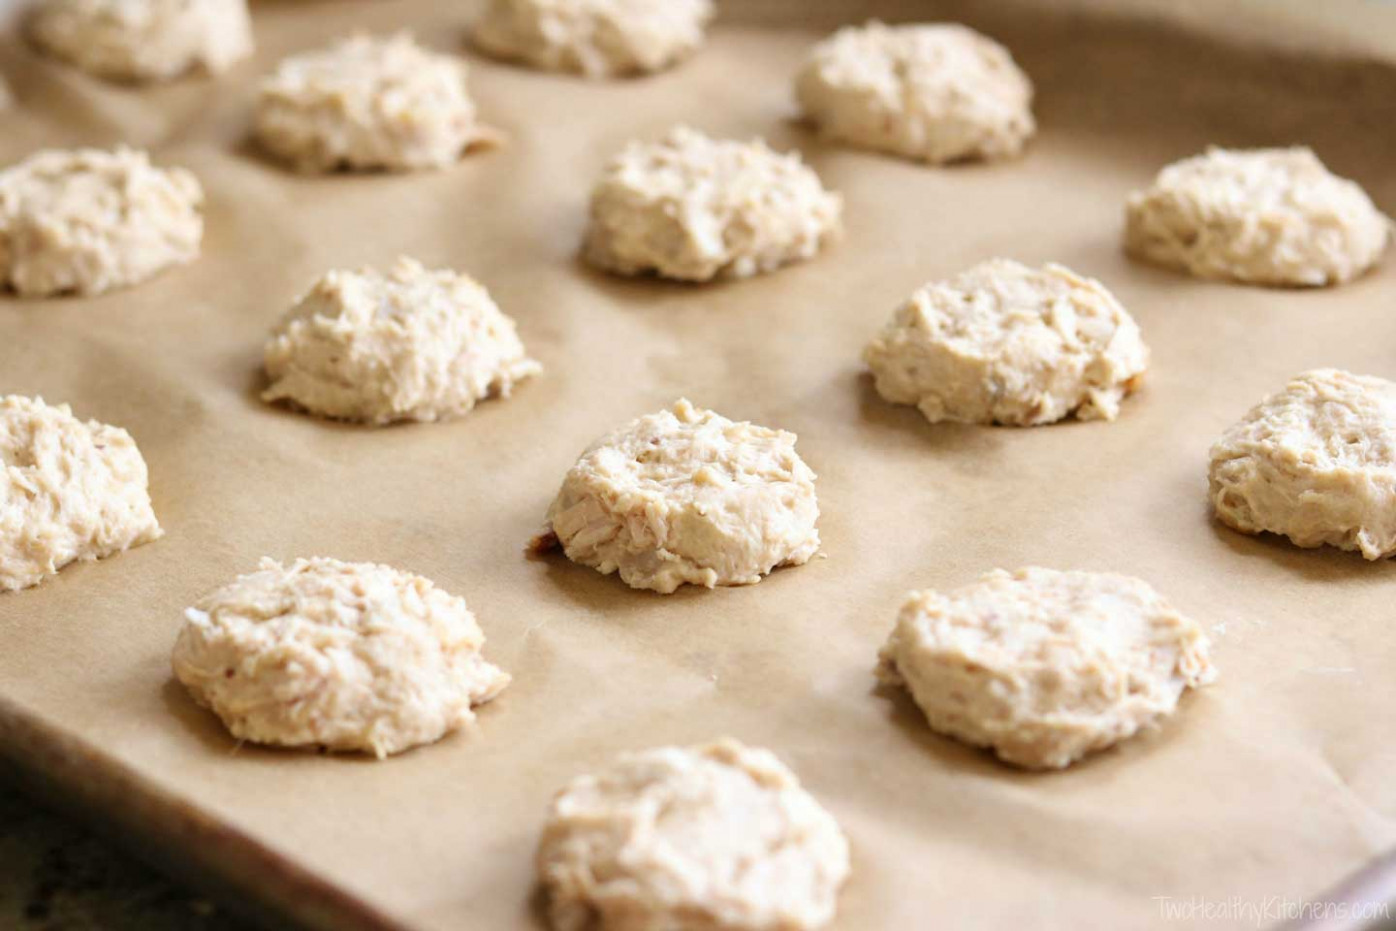 15-Ingredient Chicken and Biscuits Homemade Dog Treats - recipes homemade healthy dog food